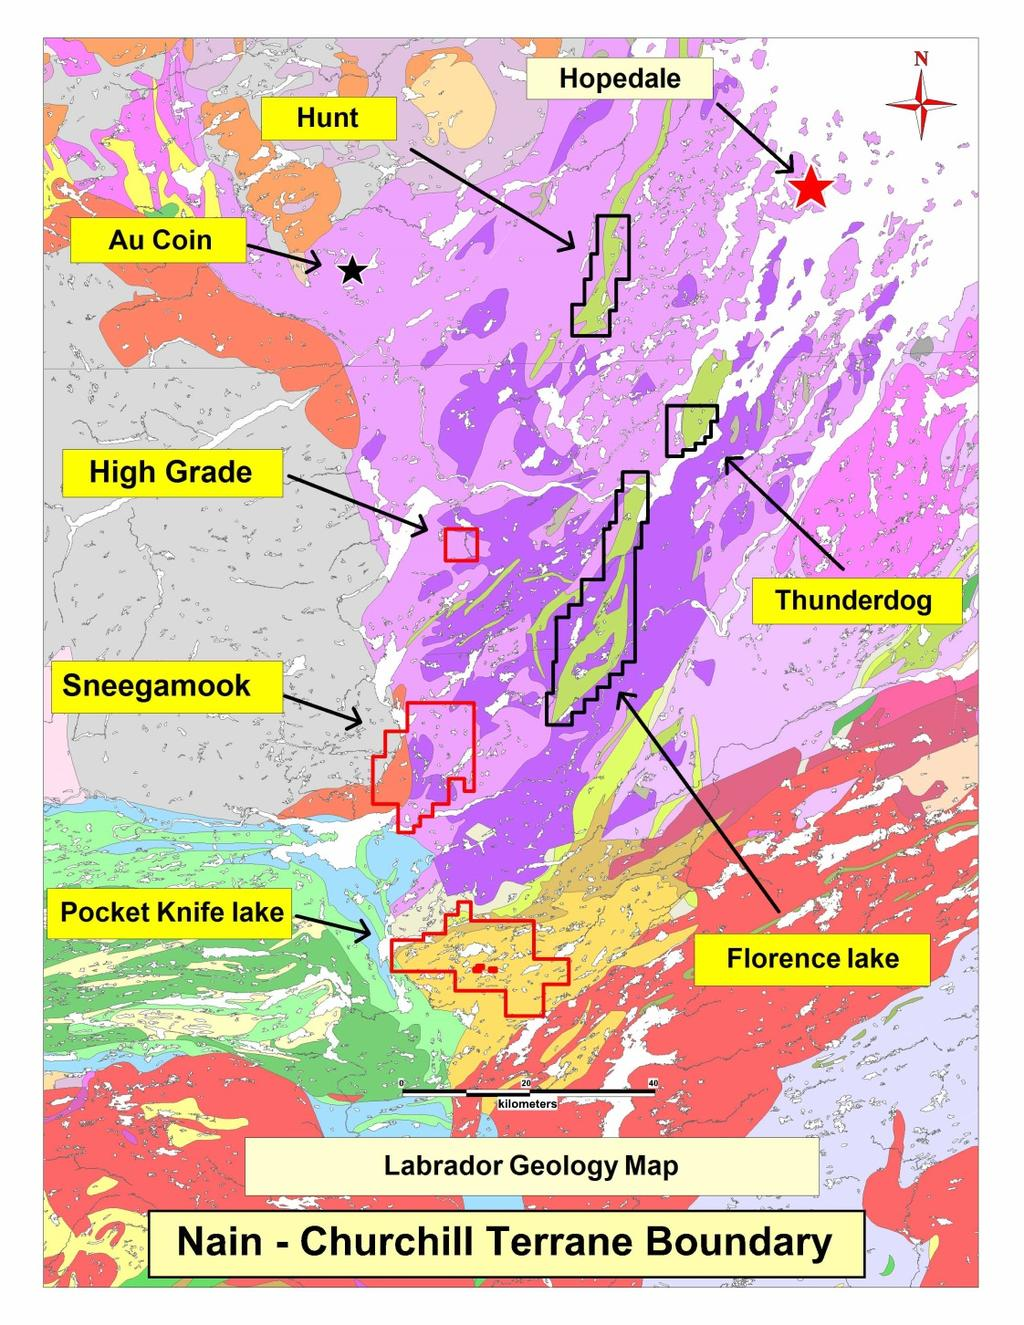 Hopedale Hopedale claims cover most of the Hopedale volcanic belt (80 km) a little known greenstone belt Under explored for gold despite known showing of 3-4 grams per tonne gold Less than $150,000